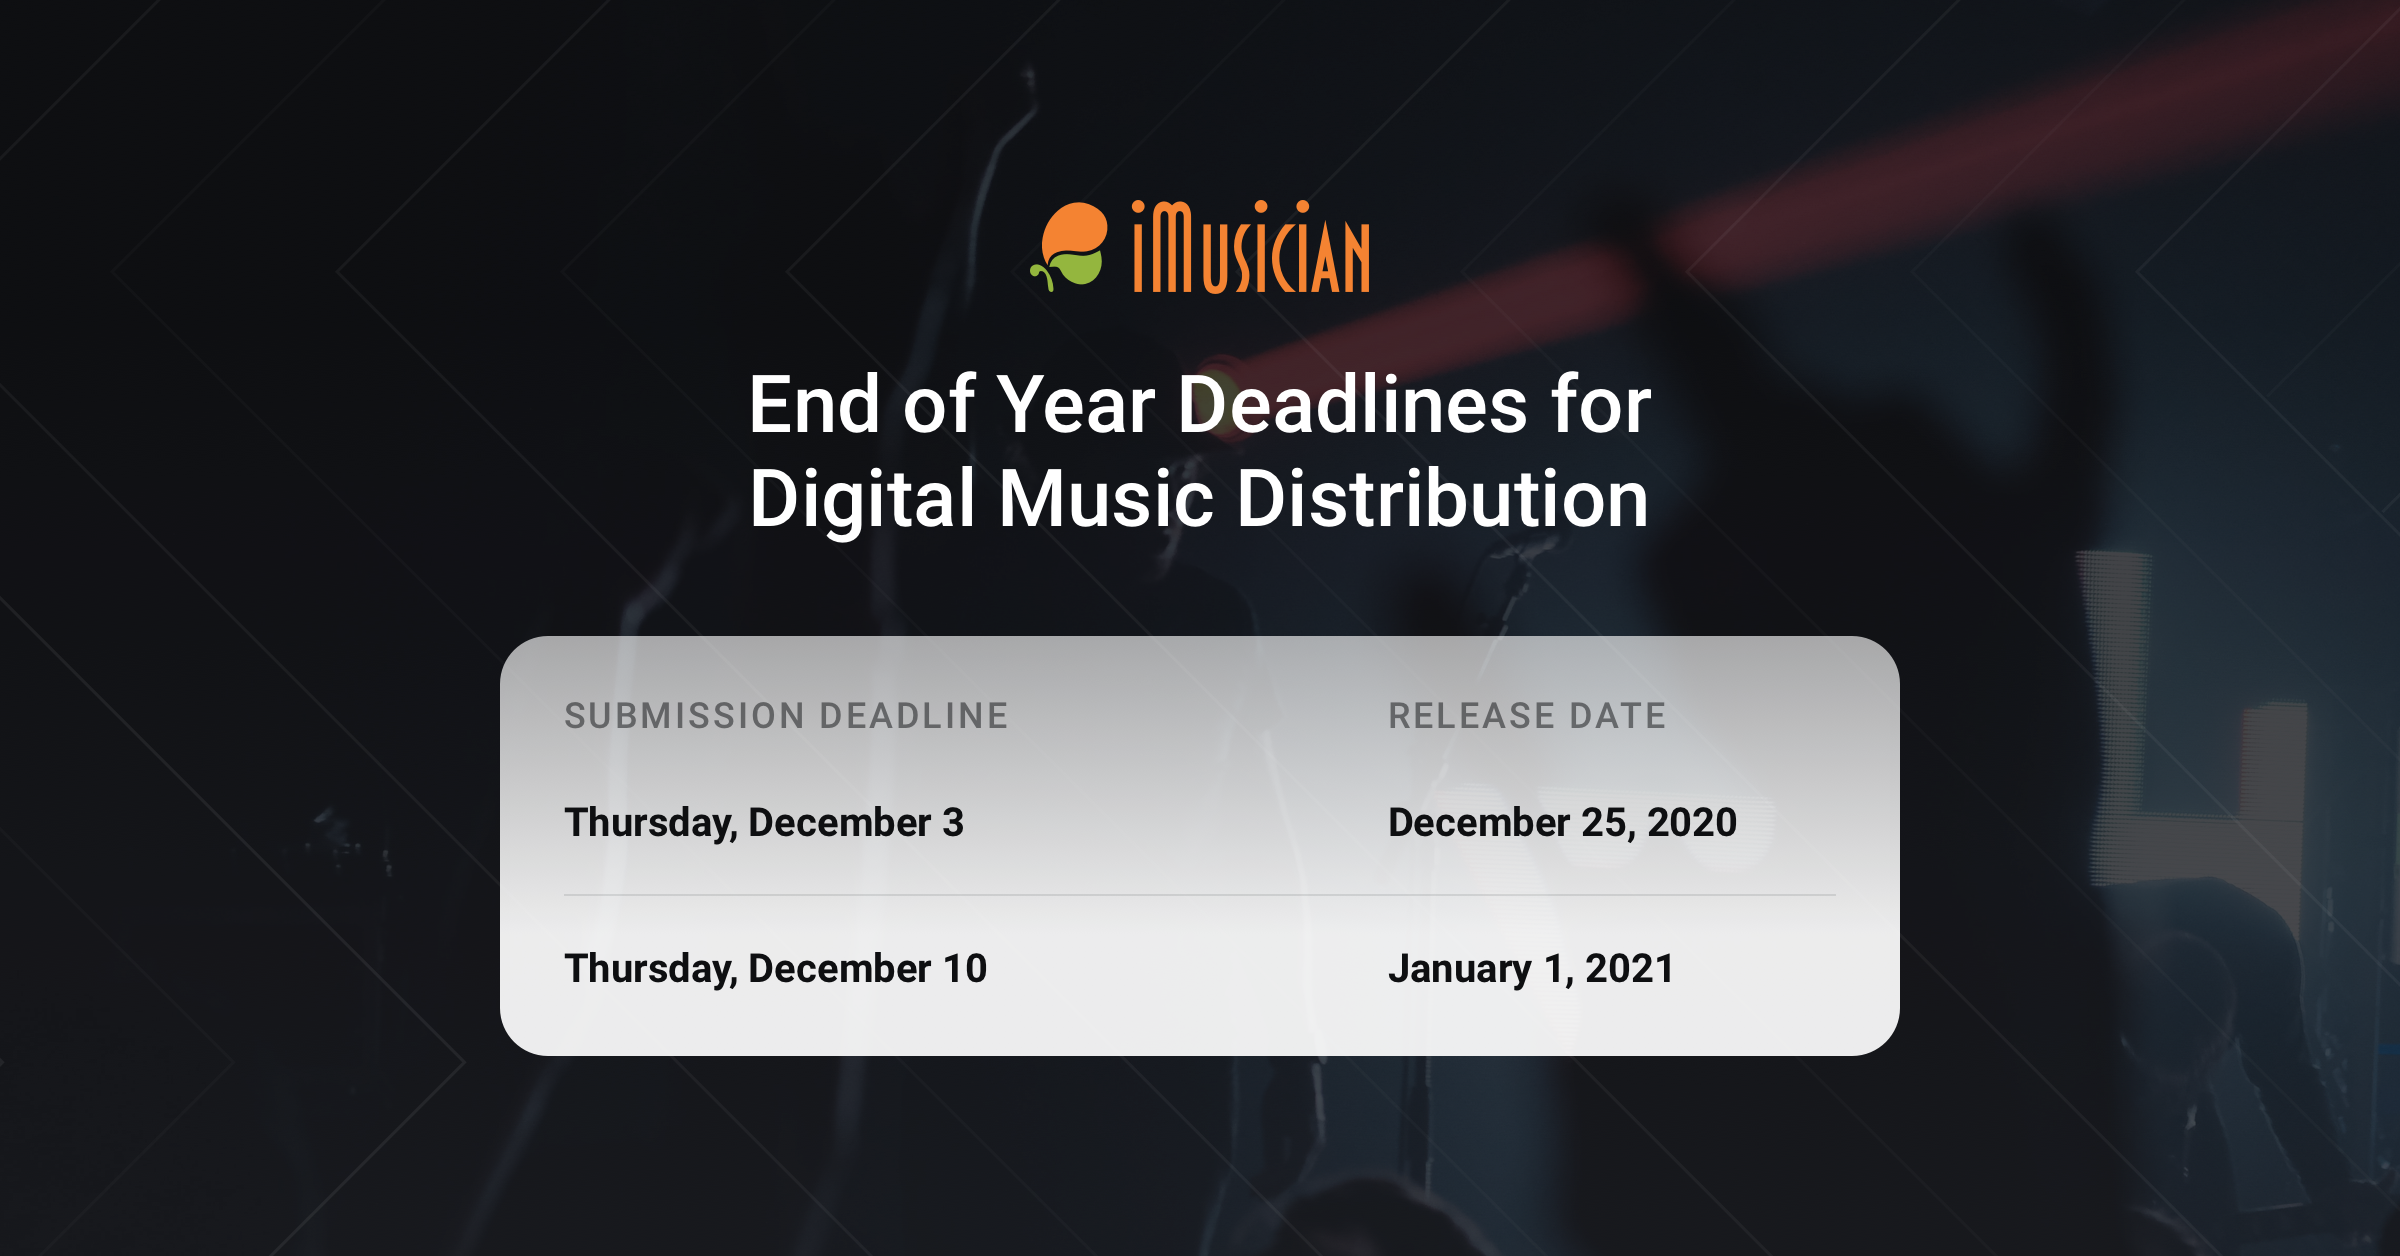 End of the year deadlines